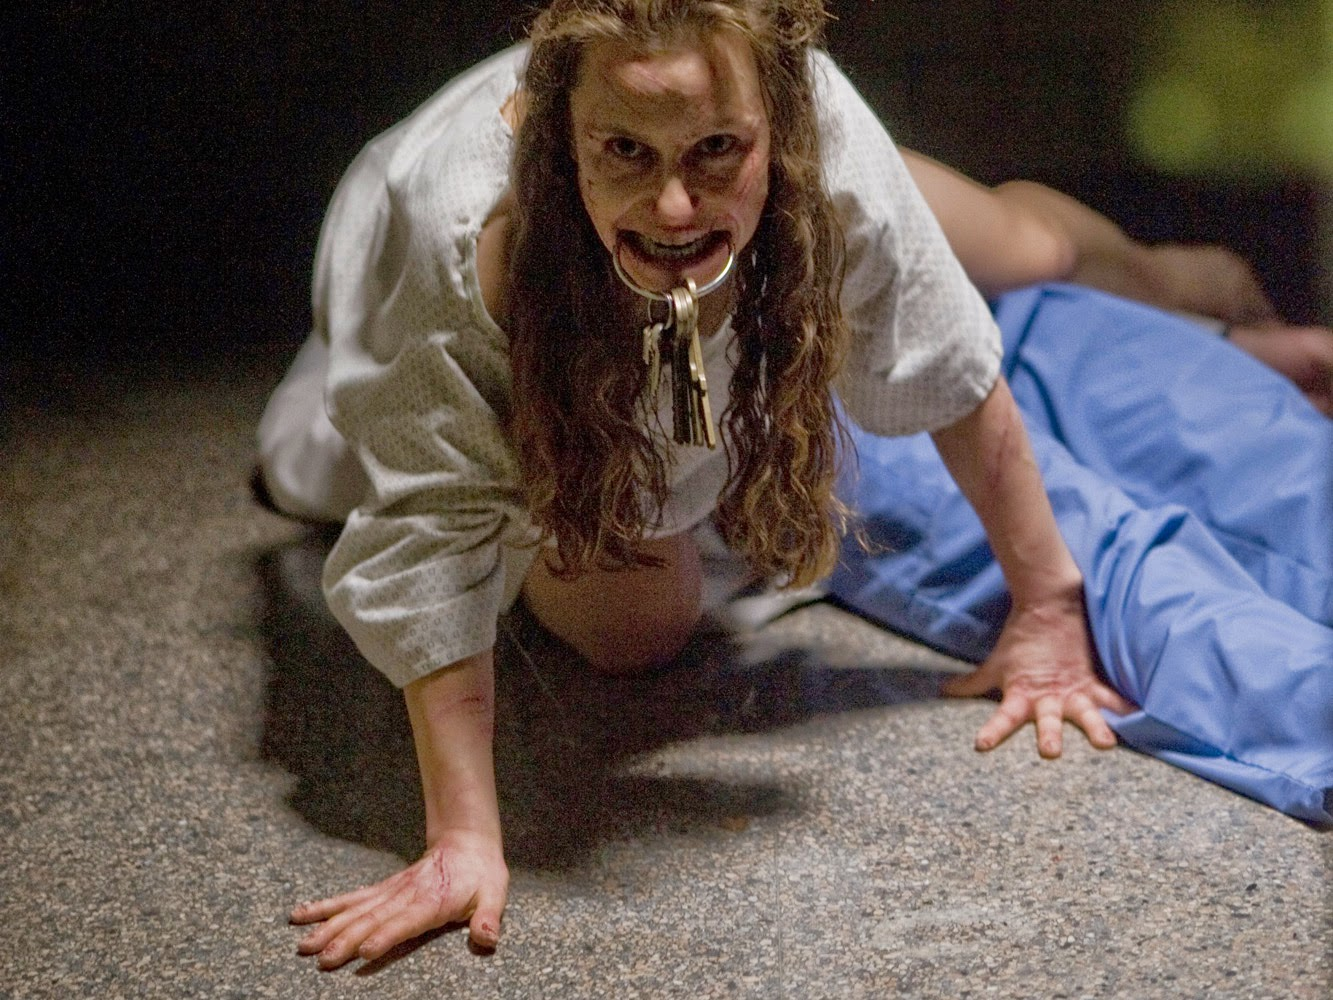 terrifying true story of demonic possession in deliver us